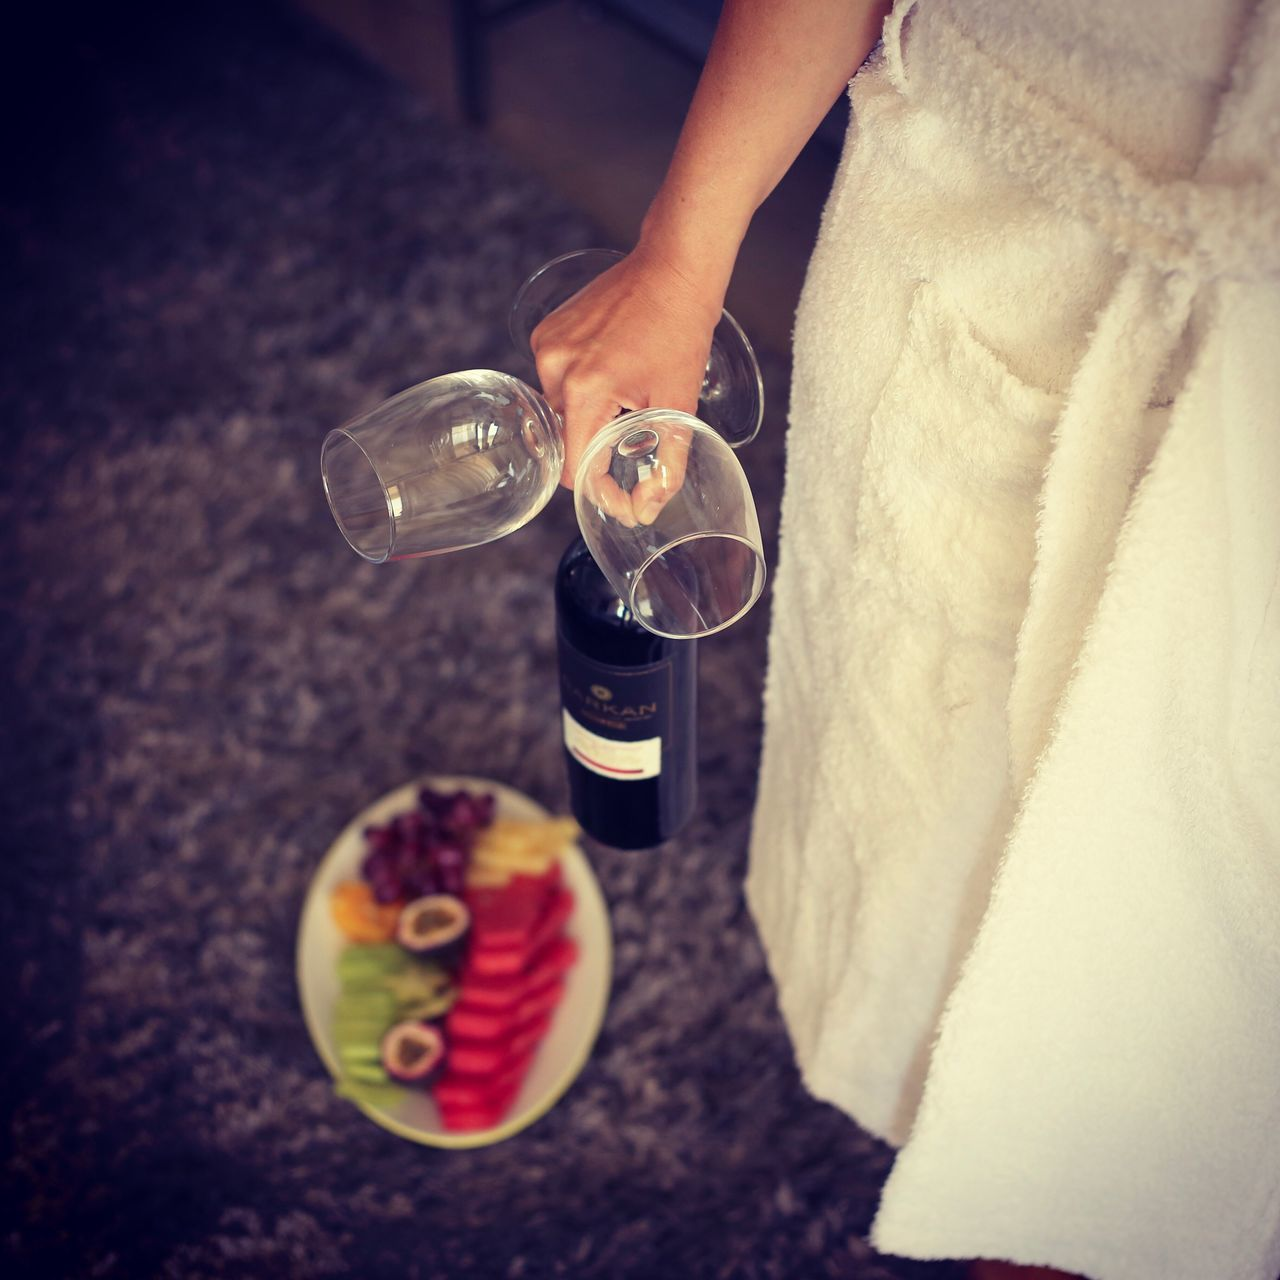 Drink Food And Drink Drinking Glass Freshness Human Hand Alcohol Human Body Part Fruit Real People Drinking Close-up Hotel Hotel Room EyeEmBestPics EyeEm Best Shots Hotel View Hotels And Resorts